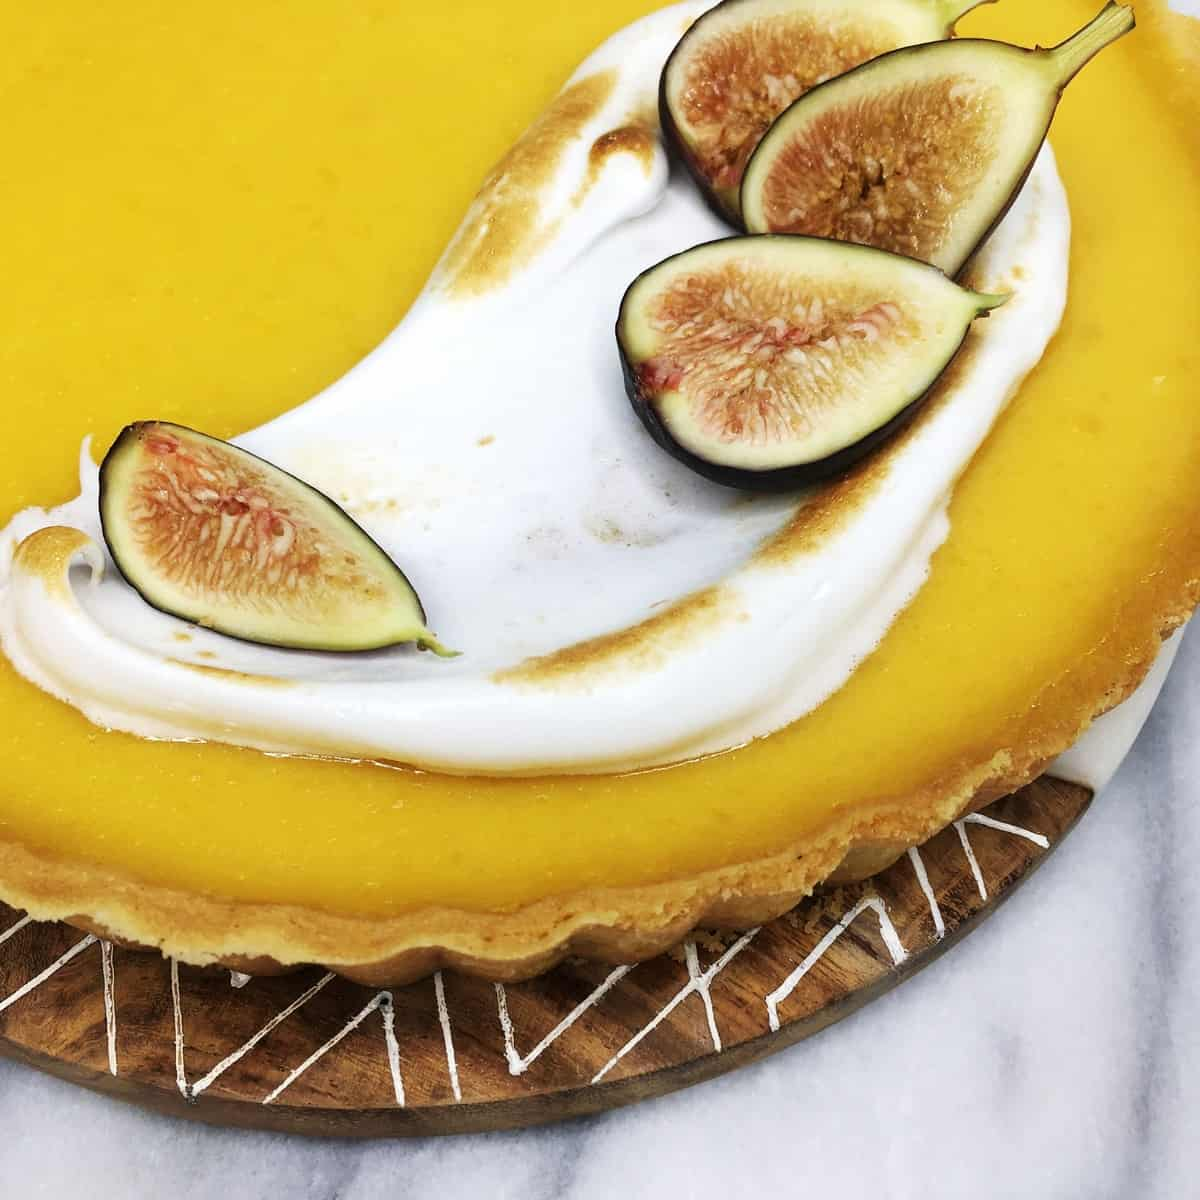 Pumpkin Pie with yellow filling and meringue with fresh figs on top: Closeup